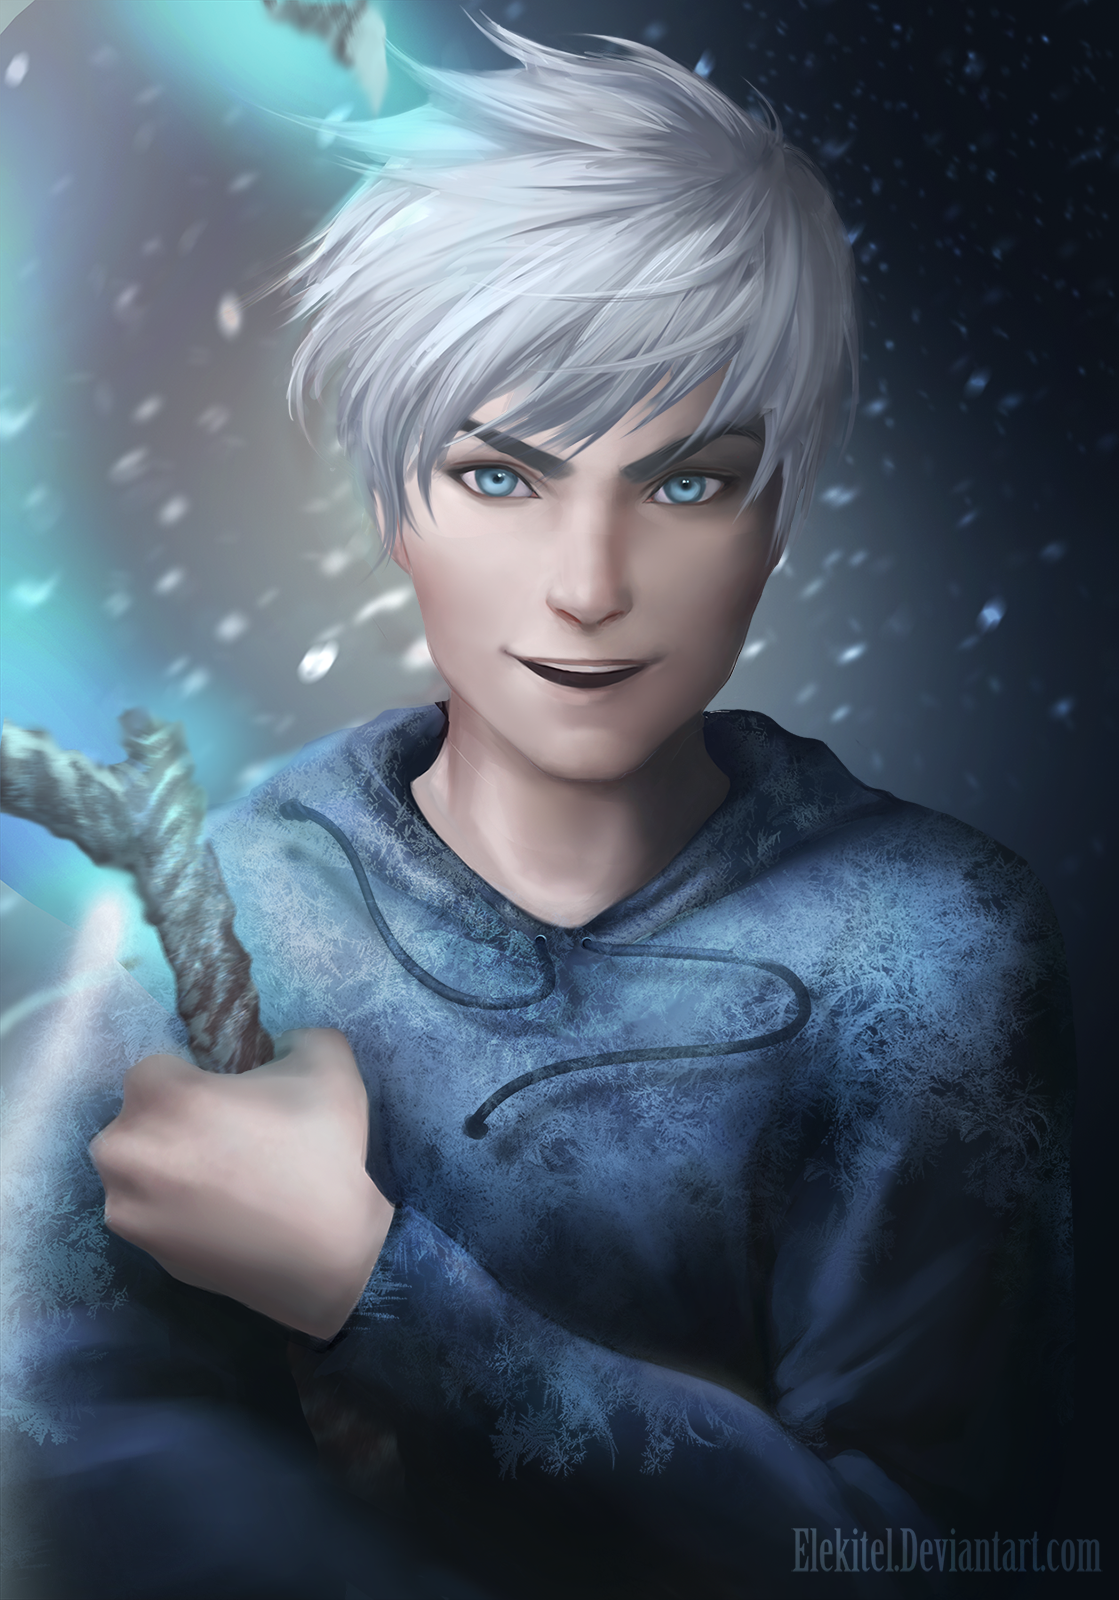 jack frost resubmit by Elekitelik